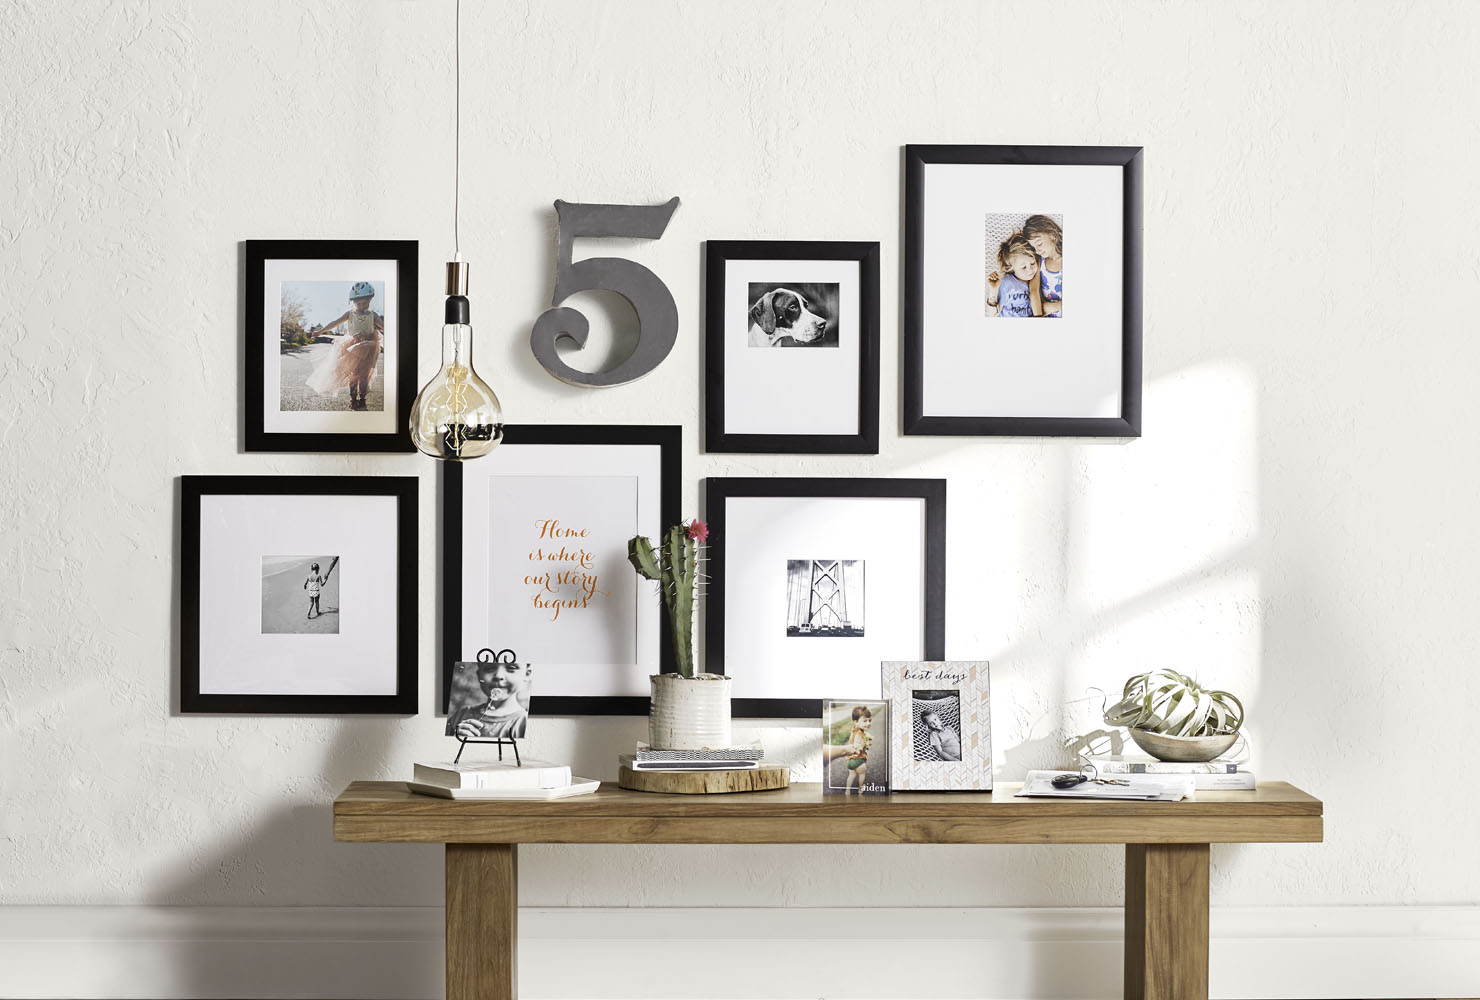 Framed gallery wall over entryway table.